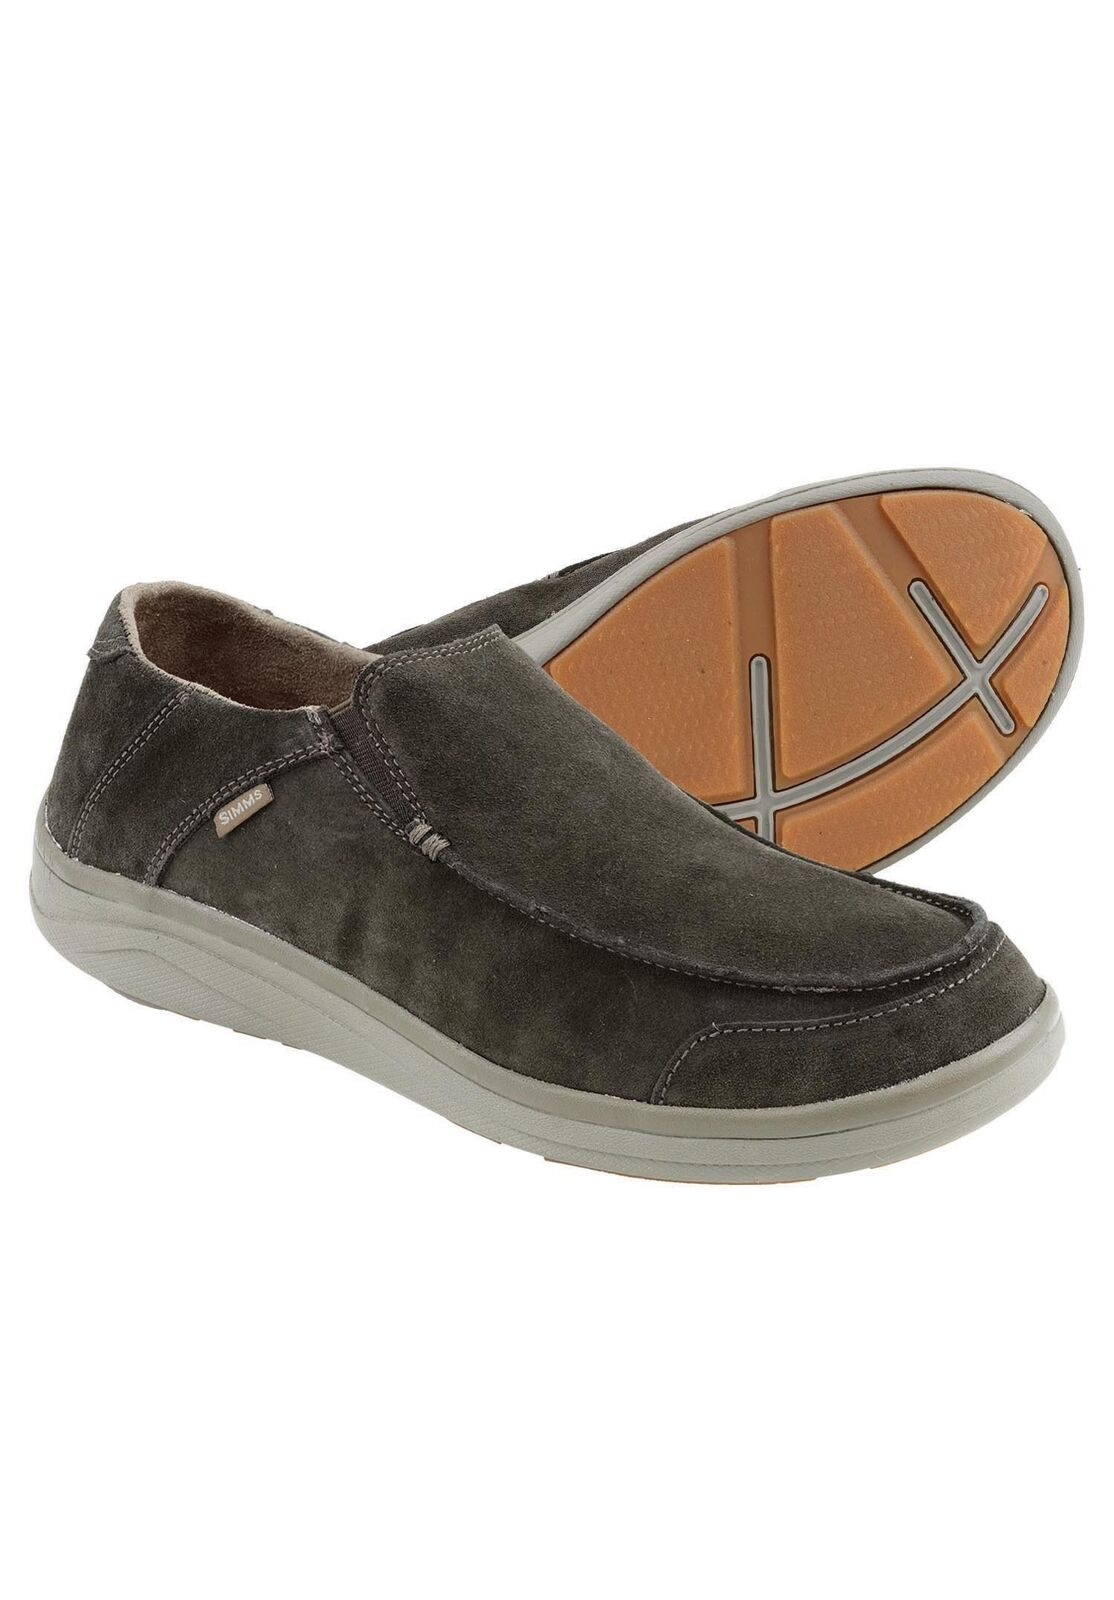 Simms Westshore   Leather Slip On shoes Dark Olive - Size 10.5 -CLOSEOUT  cheap